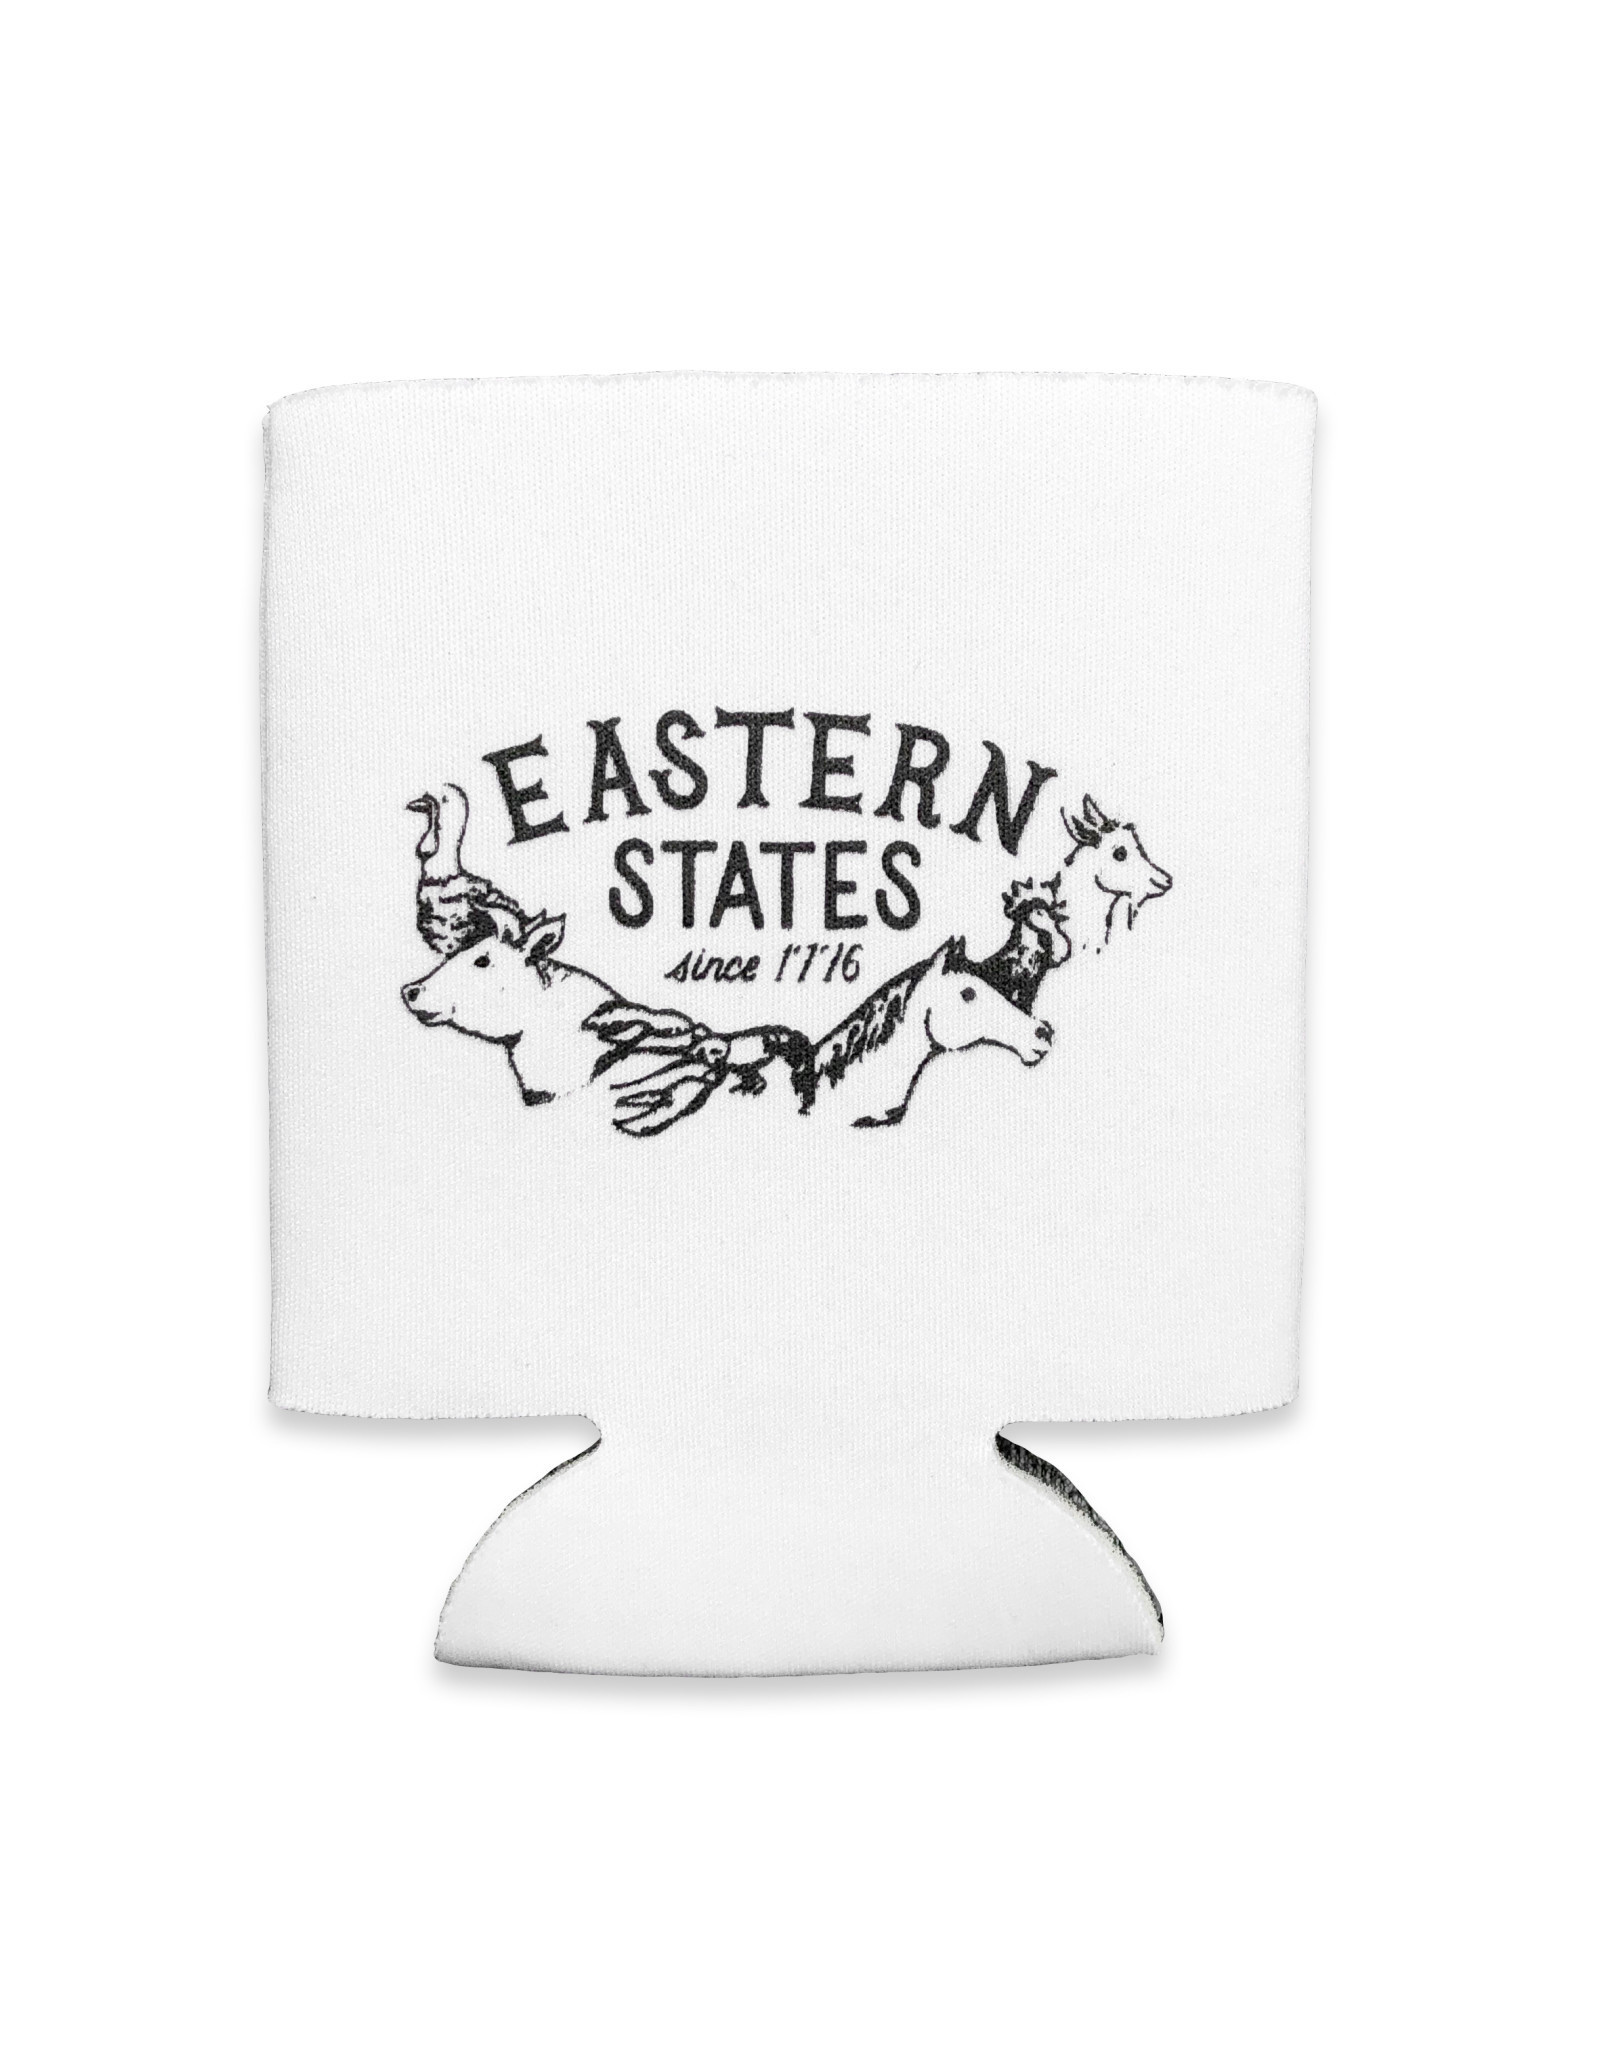 The Eastern States Coozie